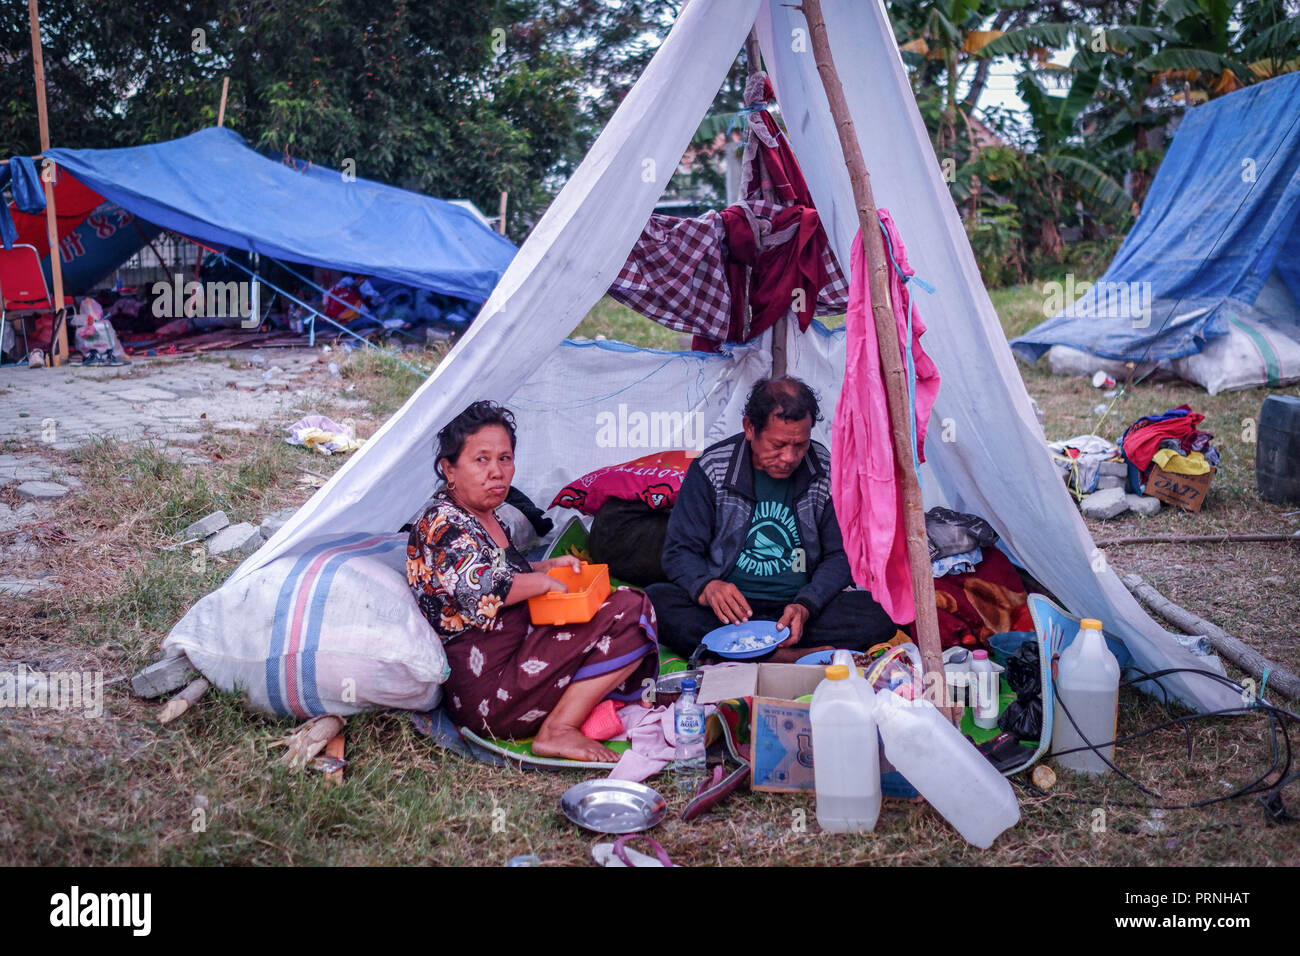 Palu, Indonesia. 4th Oct 2018. Refugees seen resting in the Lere Refugee settlement. A deadly earthquake measuring 7.7 magnitude and the tsunami wave caused by it has destroyed the city of Palu and much of the area in Central Sulawesi. According to the officials, death toll from devastating quake and tsunami rises to 1,347, around 800 people in hospitals are seriously injured and some 62,000 people have been displaced in 24 camps around the region. Credit: SOPA Images Limited/Alamy Live News - Stock Image